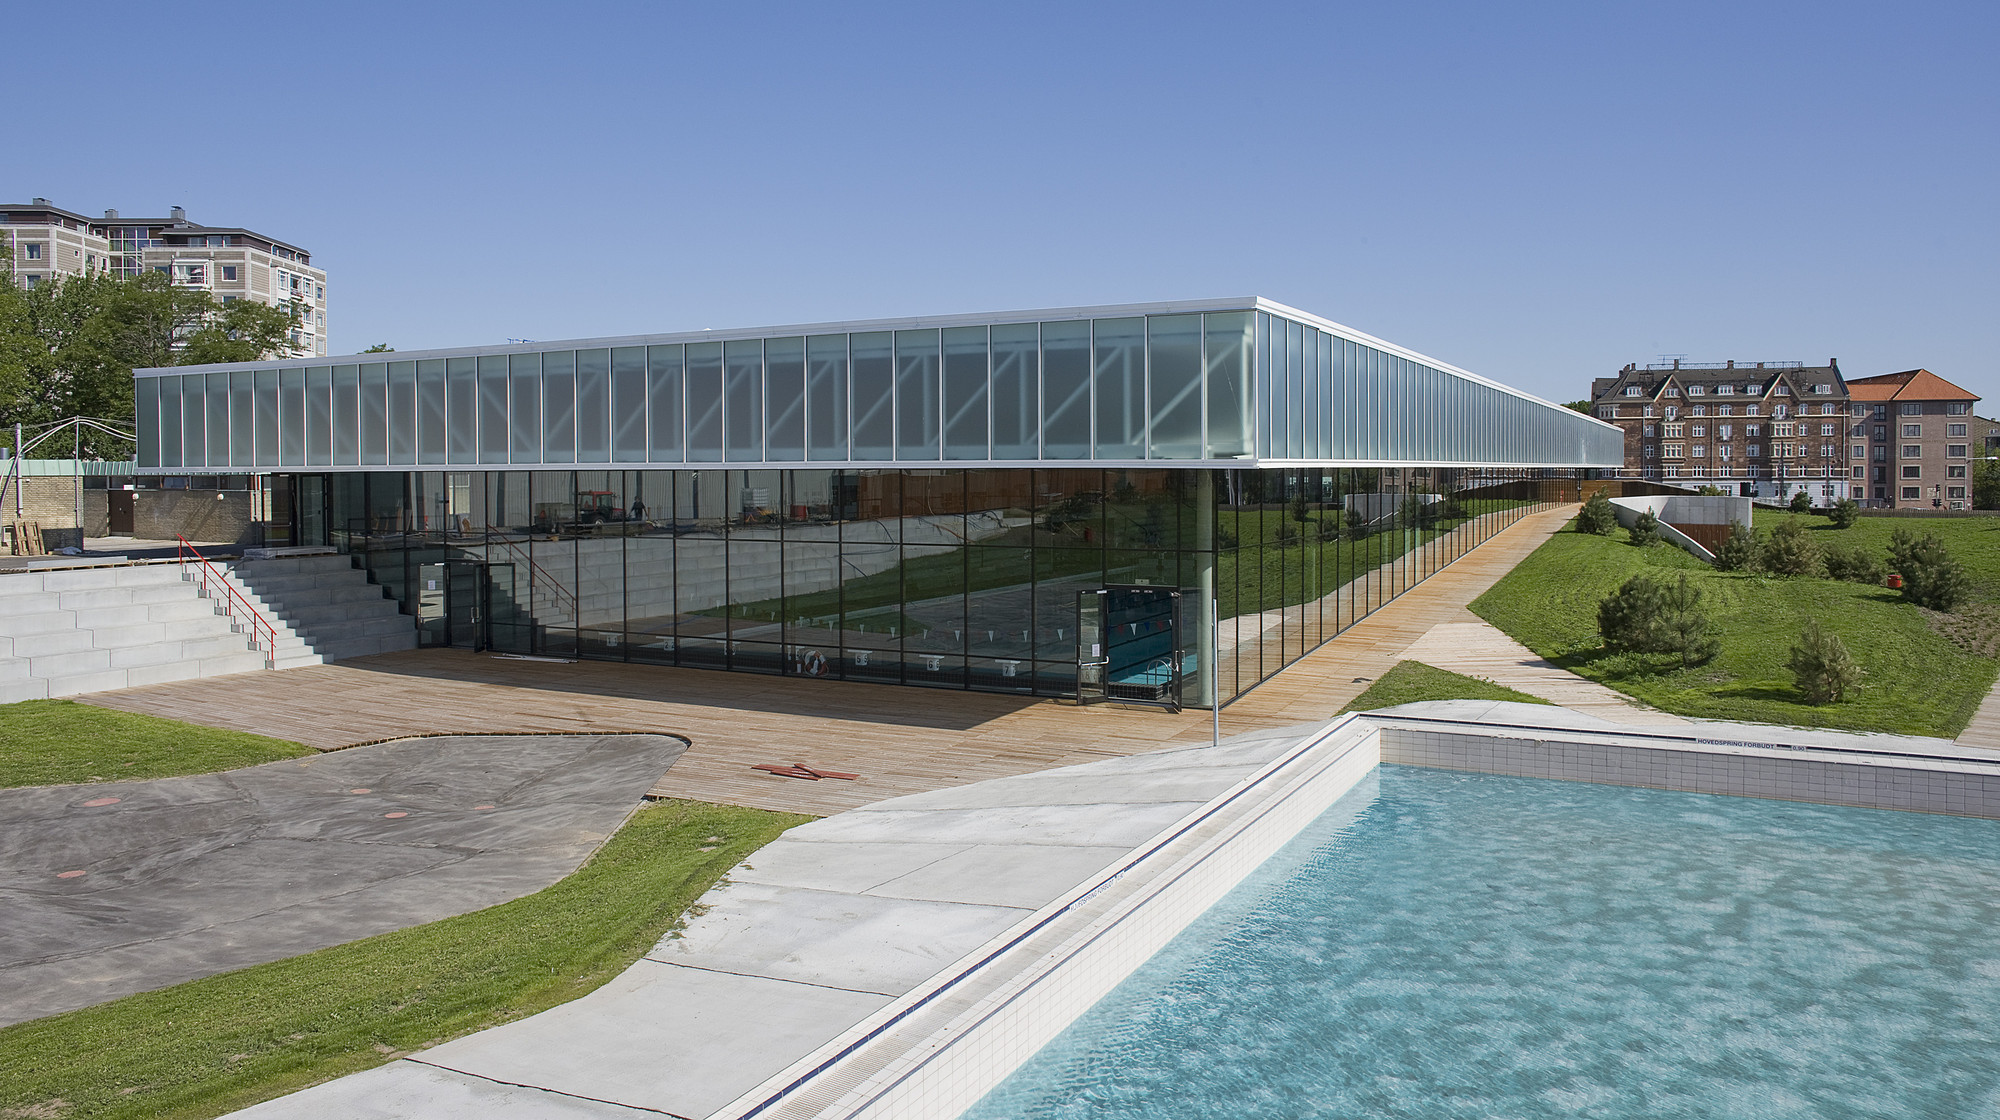 Swim Stadium Bellahoj Arkitema Architects Archdaily